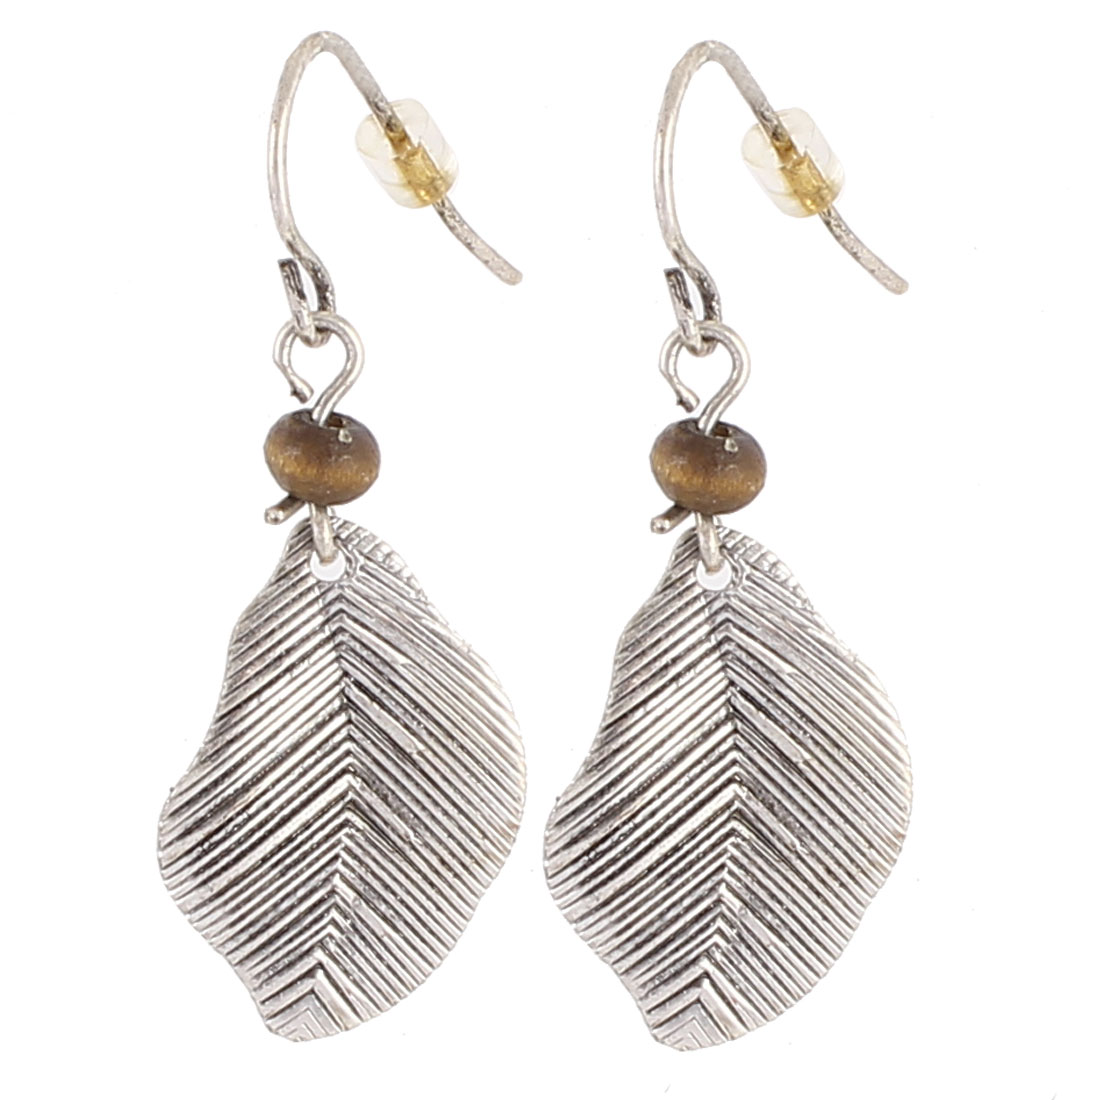 "Women Plastic Brown Bead Decor Metal Leaf Shape Dangling Pendant Hook Earrings Earbobs Silver Tone 1.4"" Length Pair"